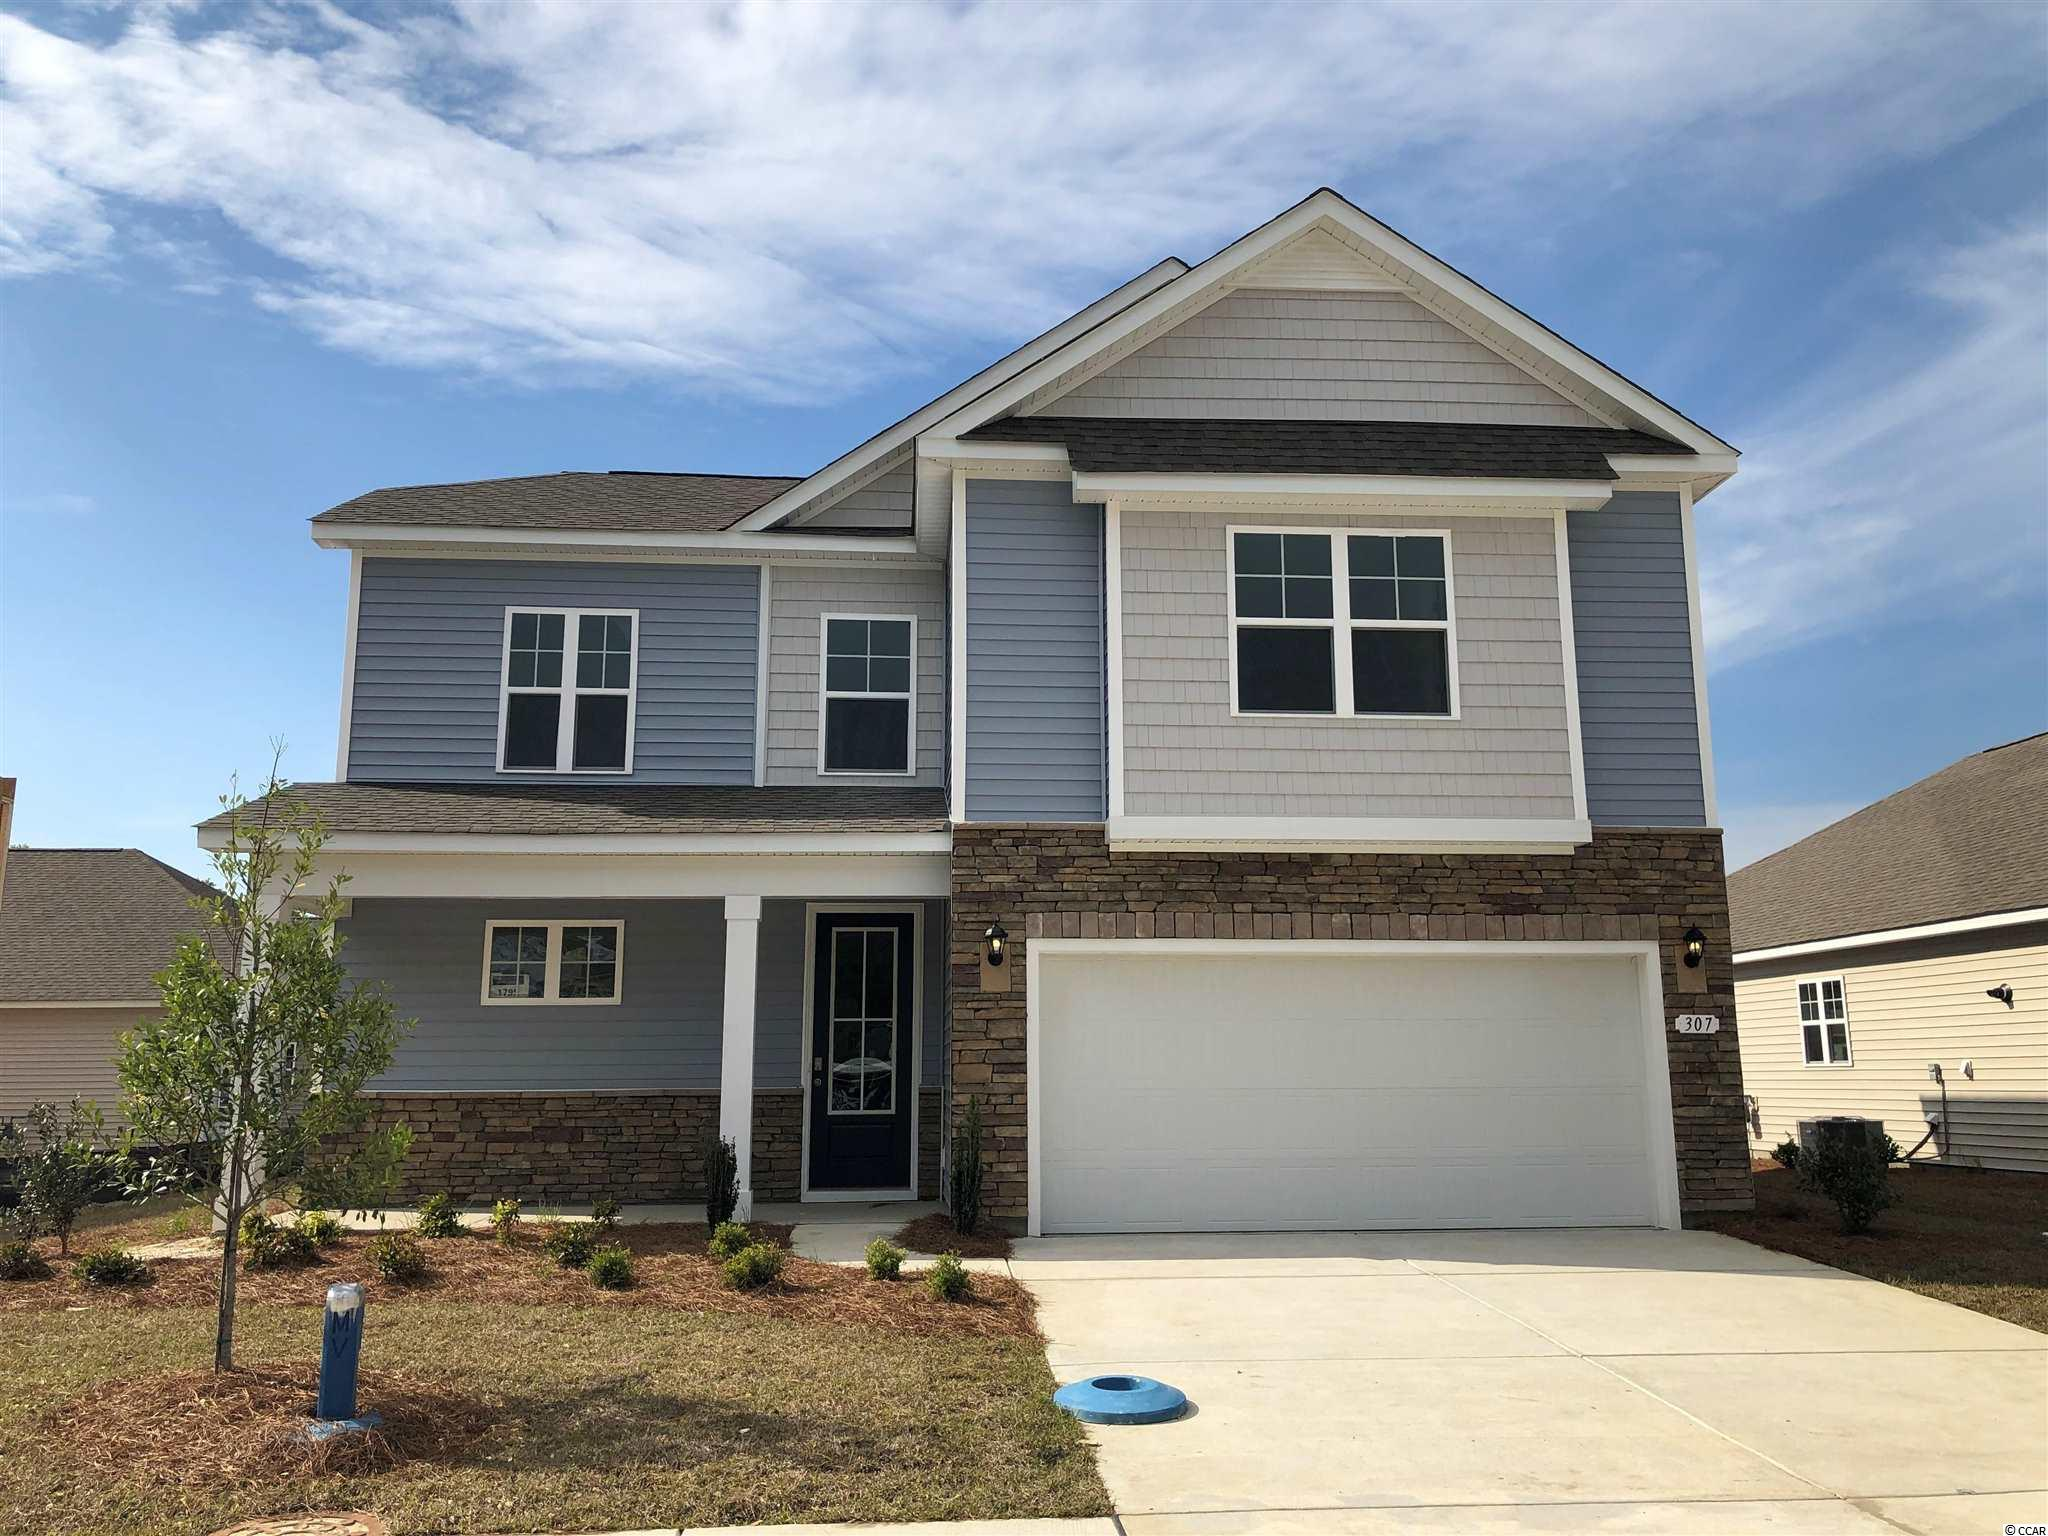 New phase now selling! Hidden Brooke is a beautiful community with an amenity that includes a pool with large deck area, clubhouse, exercise room, and fire pit overlooking the water. Minutes away from Highway 31 which provides quick and easy access to all of the Grand Strand's offerings: dining, entertainment, shopping, and golf! Tranquil setting just a short drive to the beach. This home has everything you are looking for! Our Belfort plan with a stacked stone elevation, 8 ft. entry door, and inviting front porch. Spacious kitchen with white painted cabinets, granite countertops, a large island overlooking the family room, walk-in pantry, and stainless Whirlpool appliances. Beautiful laminate wood flooring throughout the main living areas with tile in the bathrooms and laundry room and sliding glass doors off the dining area lead to the rear screen porch creating a seamless transition from indoor to outdoor living. The first floor primary bedroom suite will feature an extended sitting room space along with a large shower, dual vanity, walk-in closet, and a separate linen closet for additional storage. Three nicely sized bedrooms and a versatile loft space are upstairs! It gets better- this is America's Smart Home! Ask an agent today about our industry leading smart home technology package that is included in all of our new homes. *Photos are of a similar Belfort home. (Home and community information, including pricing, included features, terms, availability and amenities, are subject to change prior to sale at any time without notice or obligation. Square footages are approximate. Pictures, photographs, colors, features, and sizes are for illustration purposes only and will vary from the homes as built. Equal housing opportunity builder.)